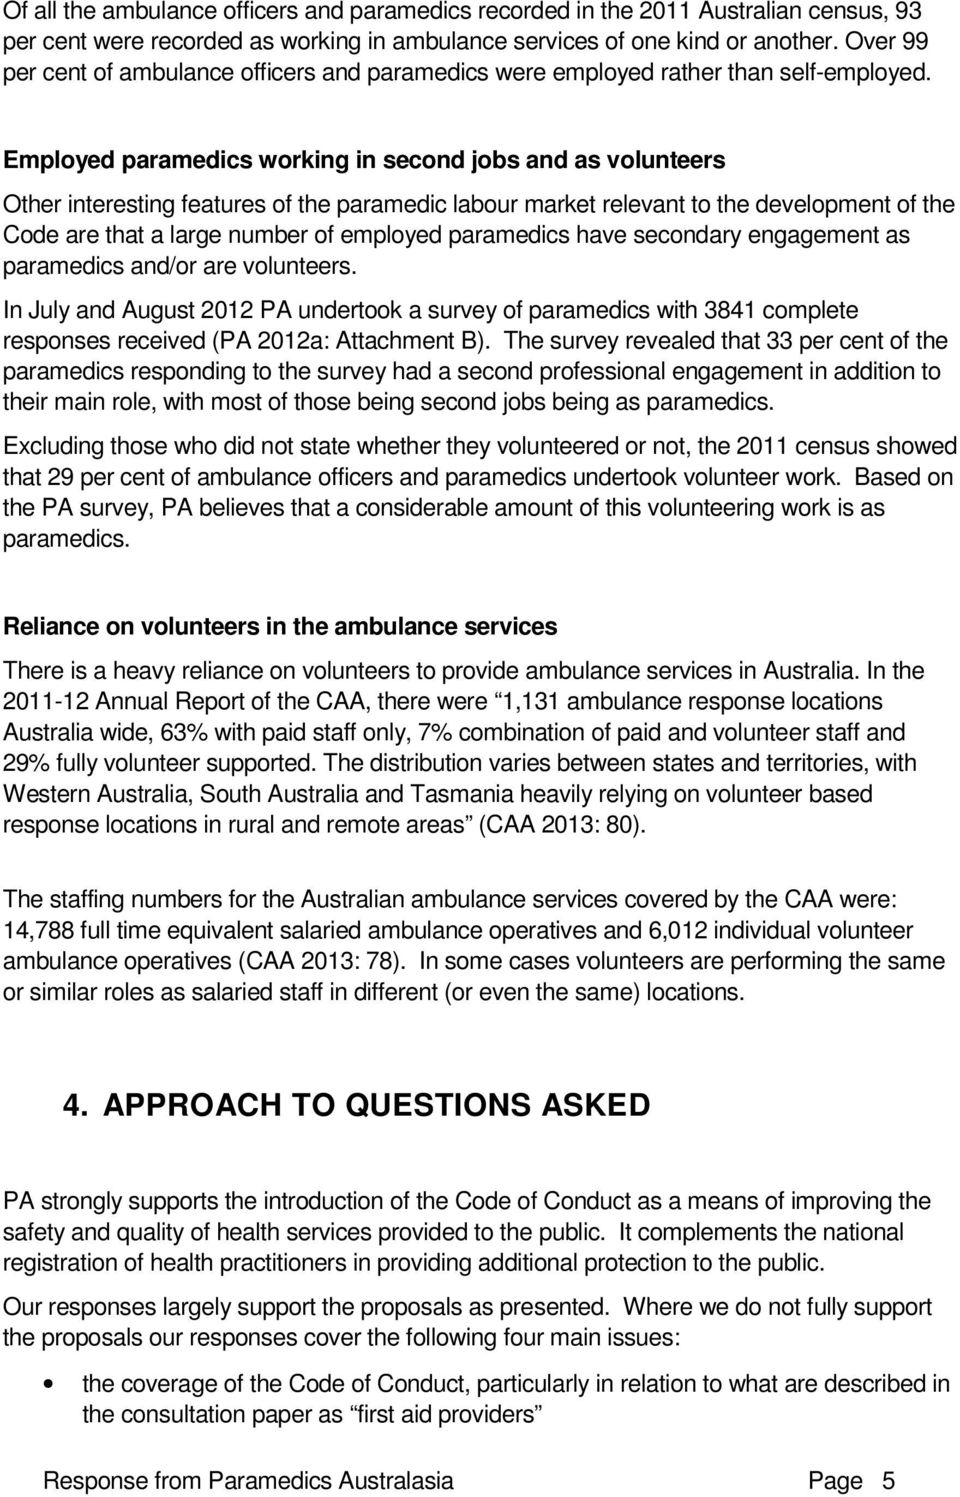 Employed paramedics working in second jobs and as volunteers Other interesting features of the paramedic labour market relevant to the development of the Code are that a large number of employed